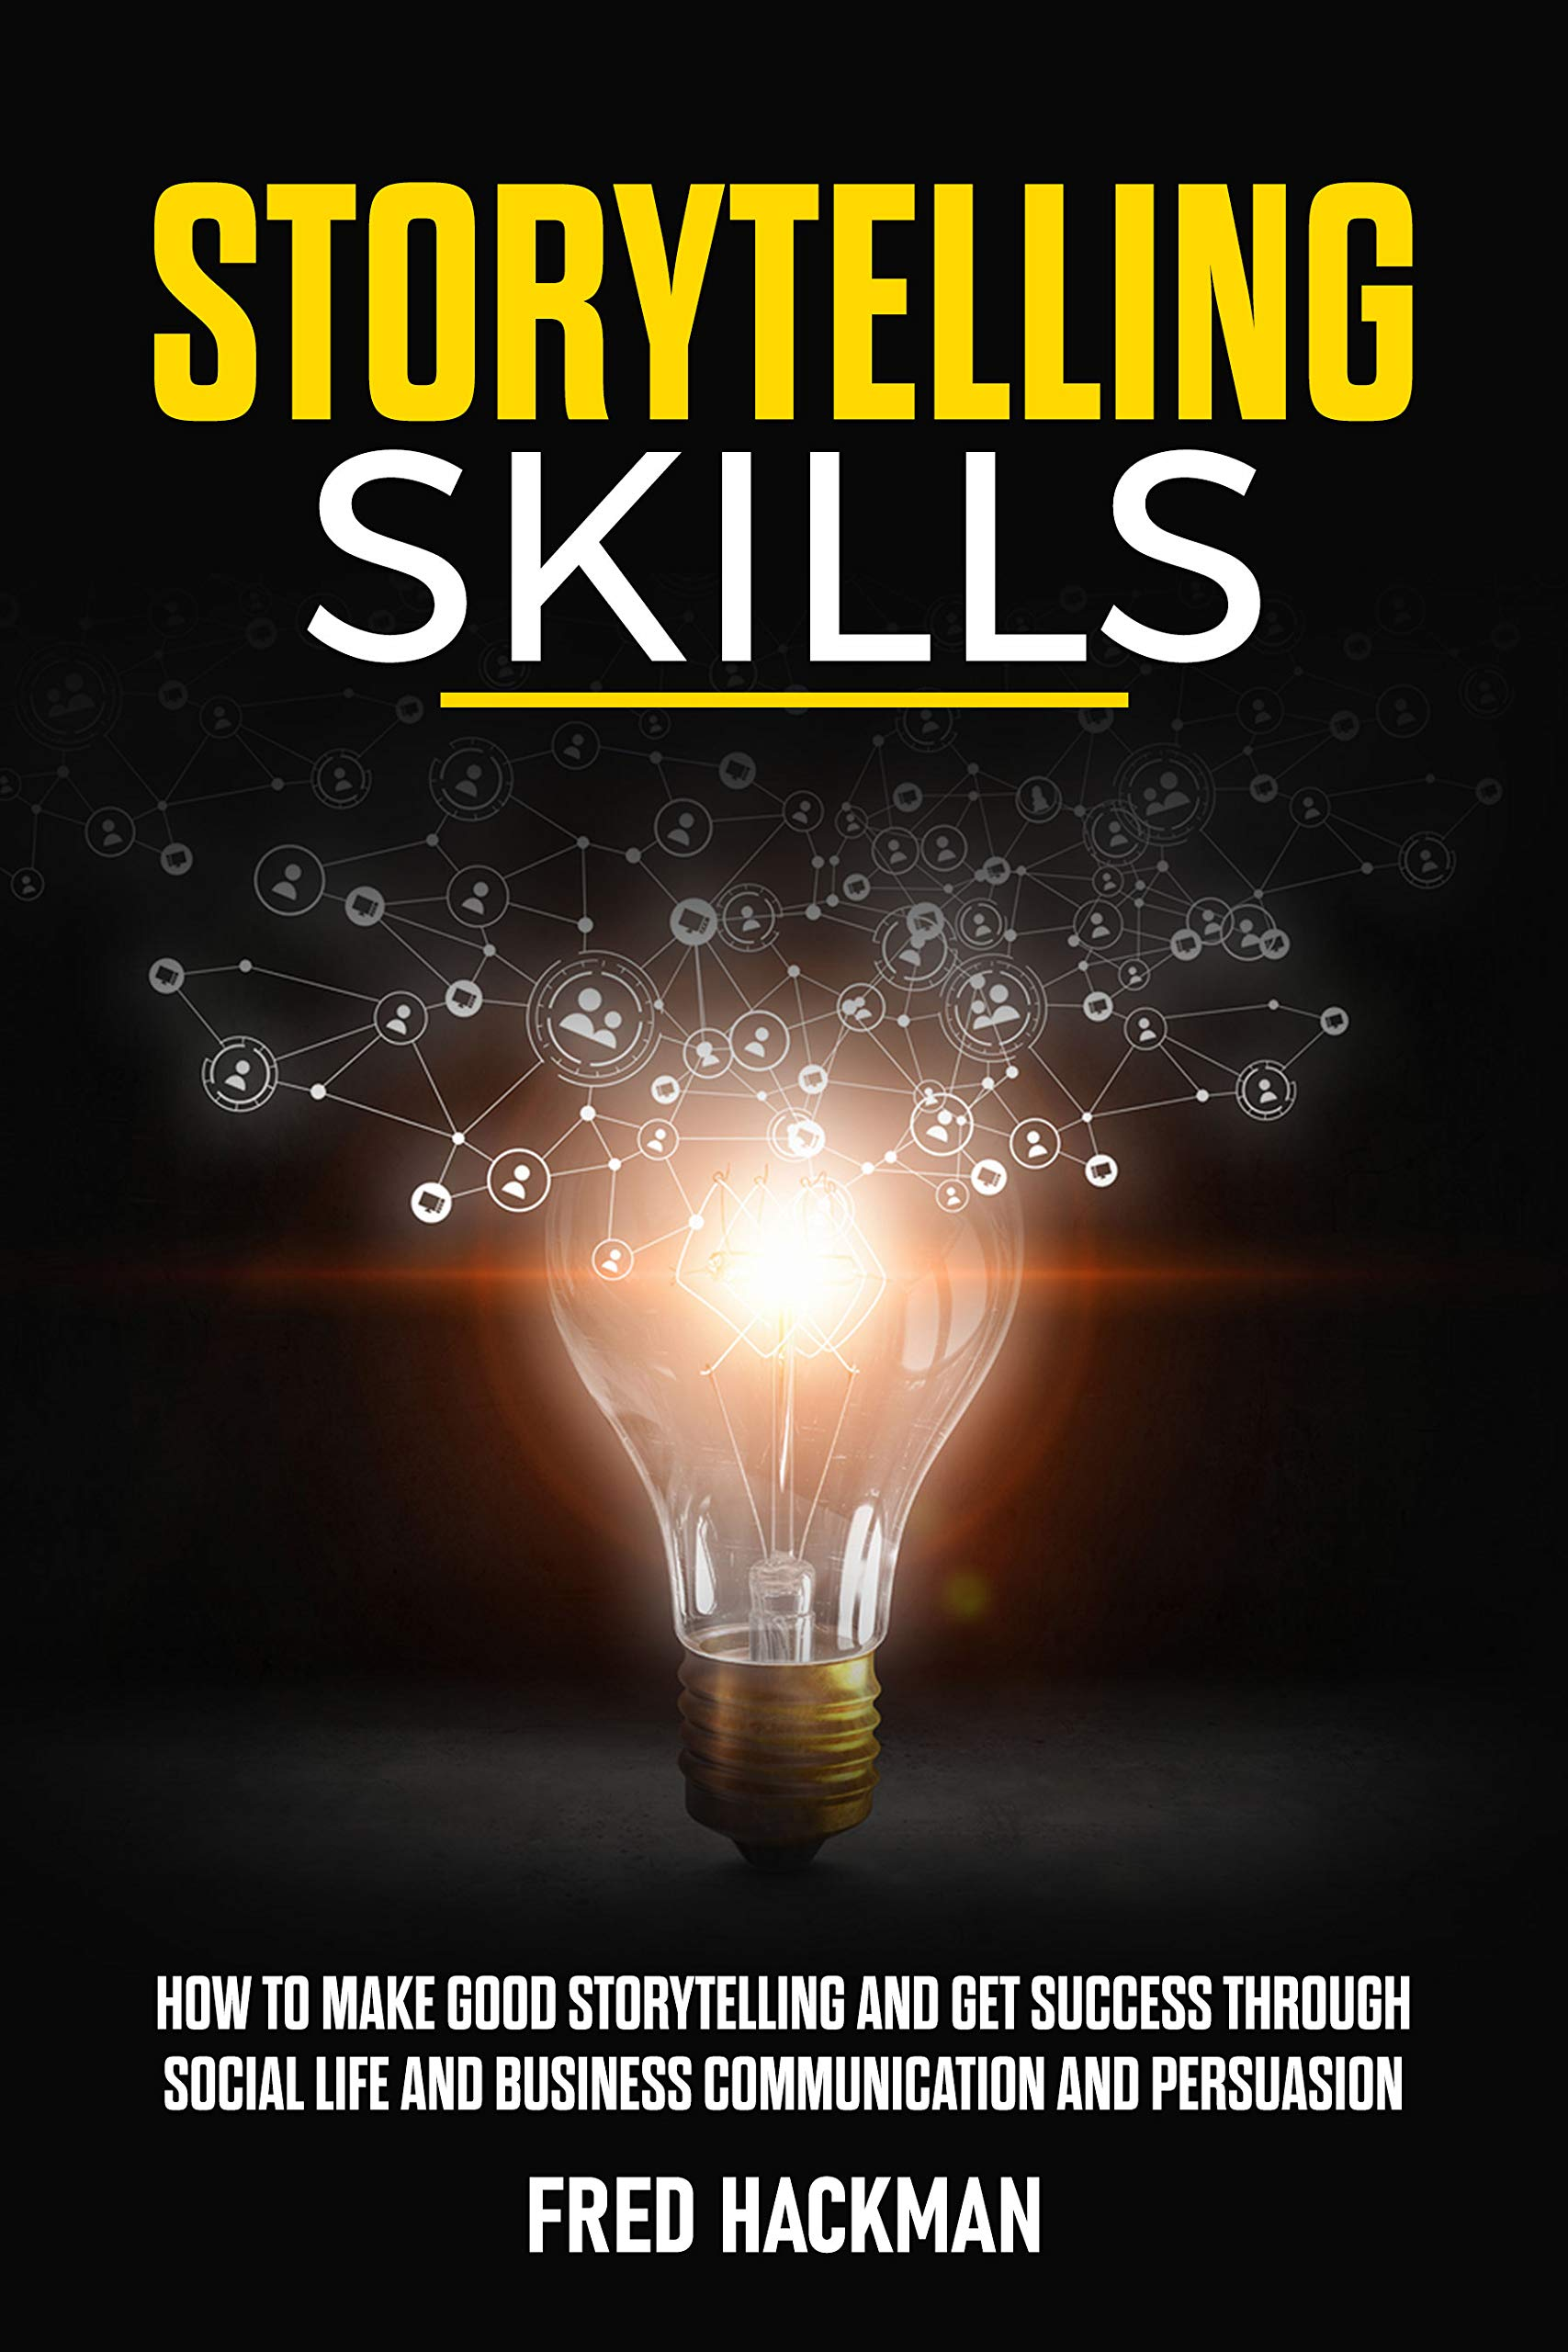 Storytelling skills: how to make a good storytelling and get success through social life  and business communication and persuasion